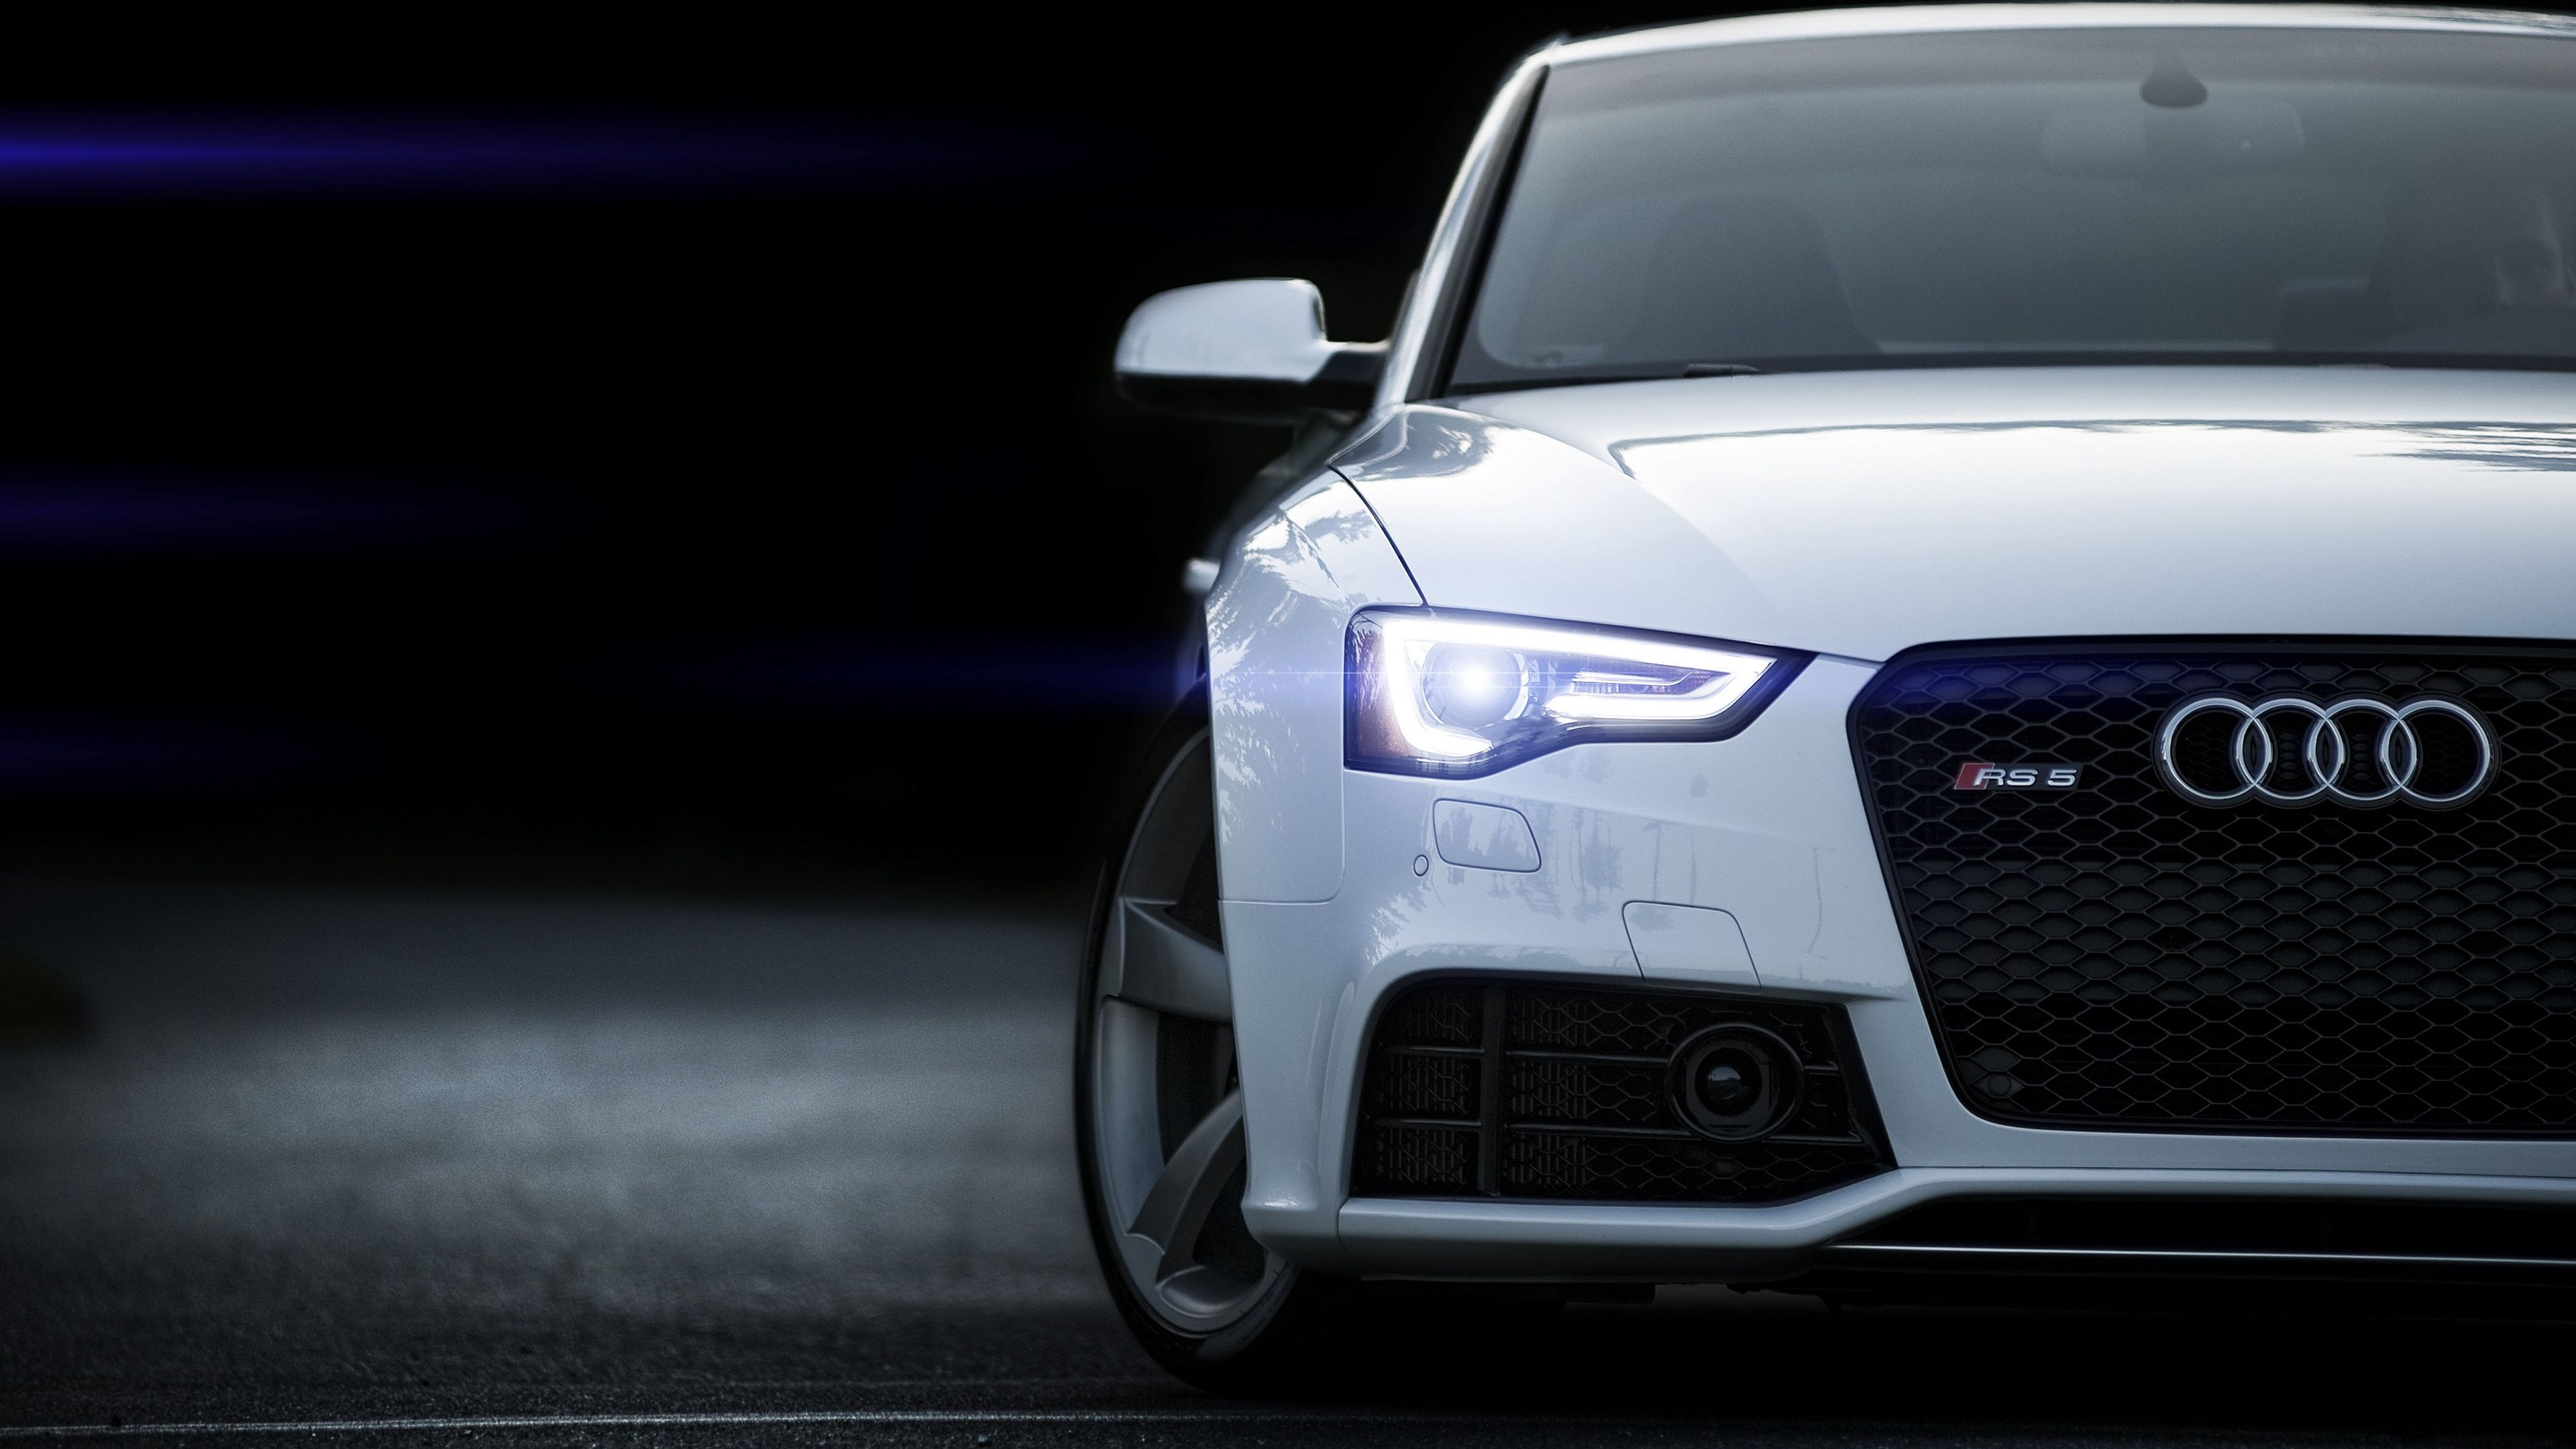 Rs5 Audi White Front View 4k White Rs5 Audi Car Wallpapers Audi Audi Wallpapers